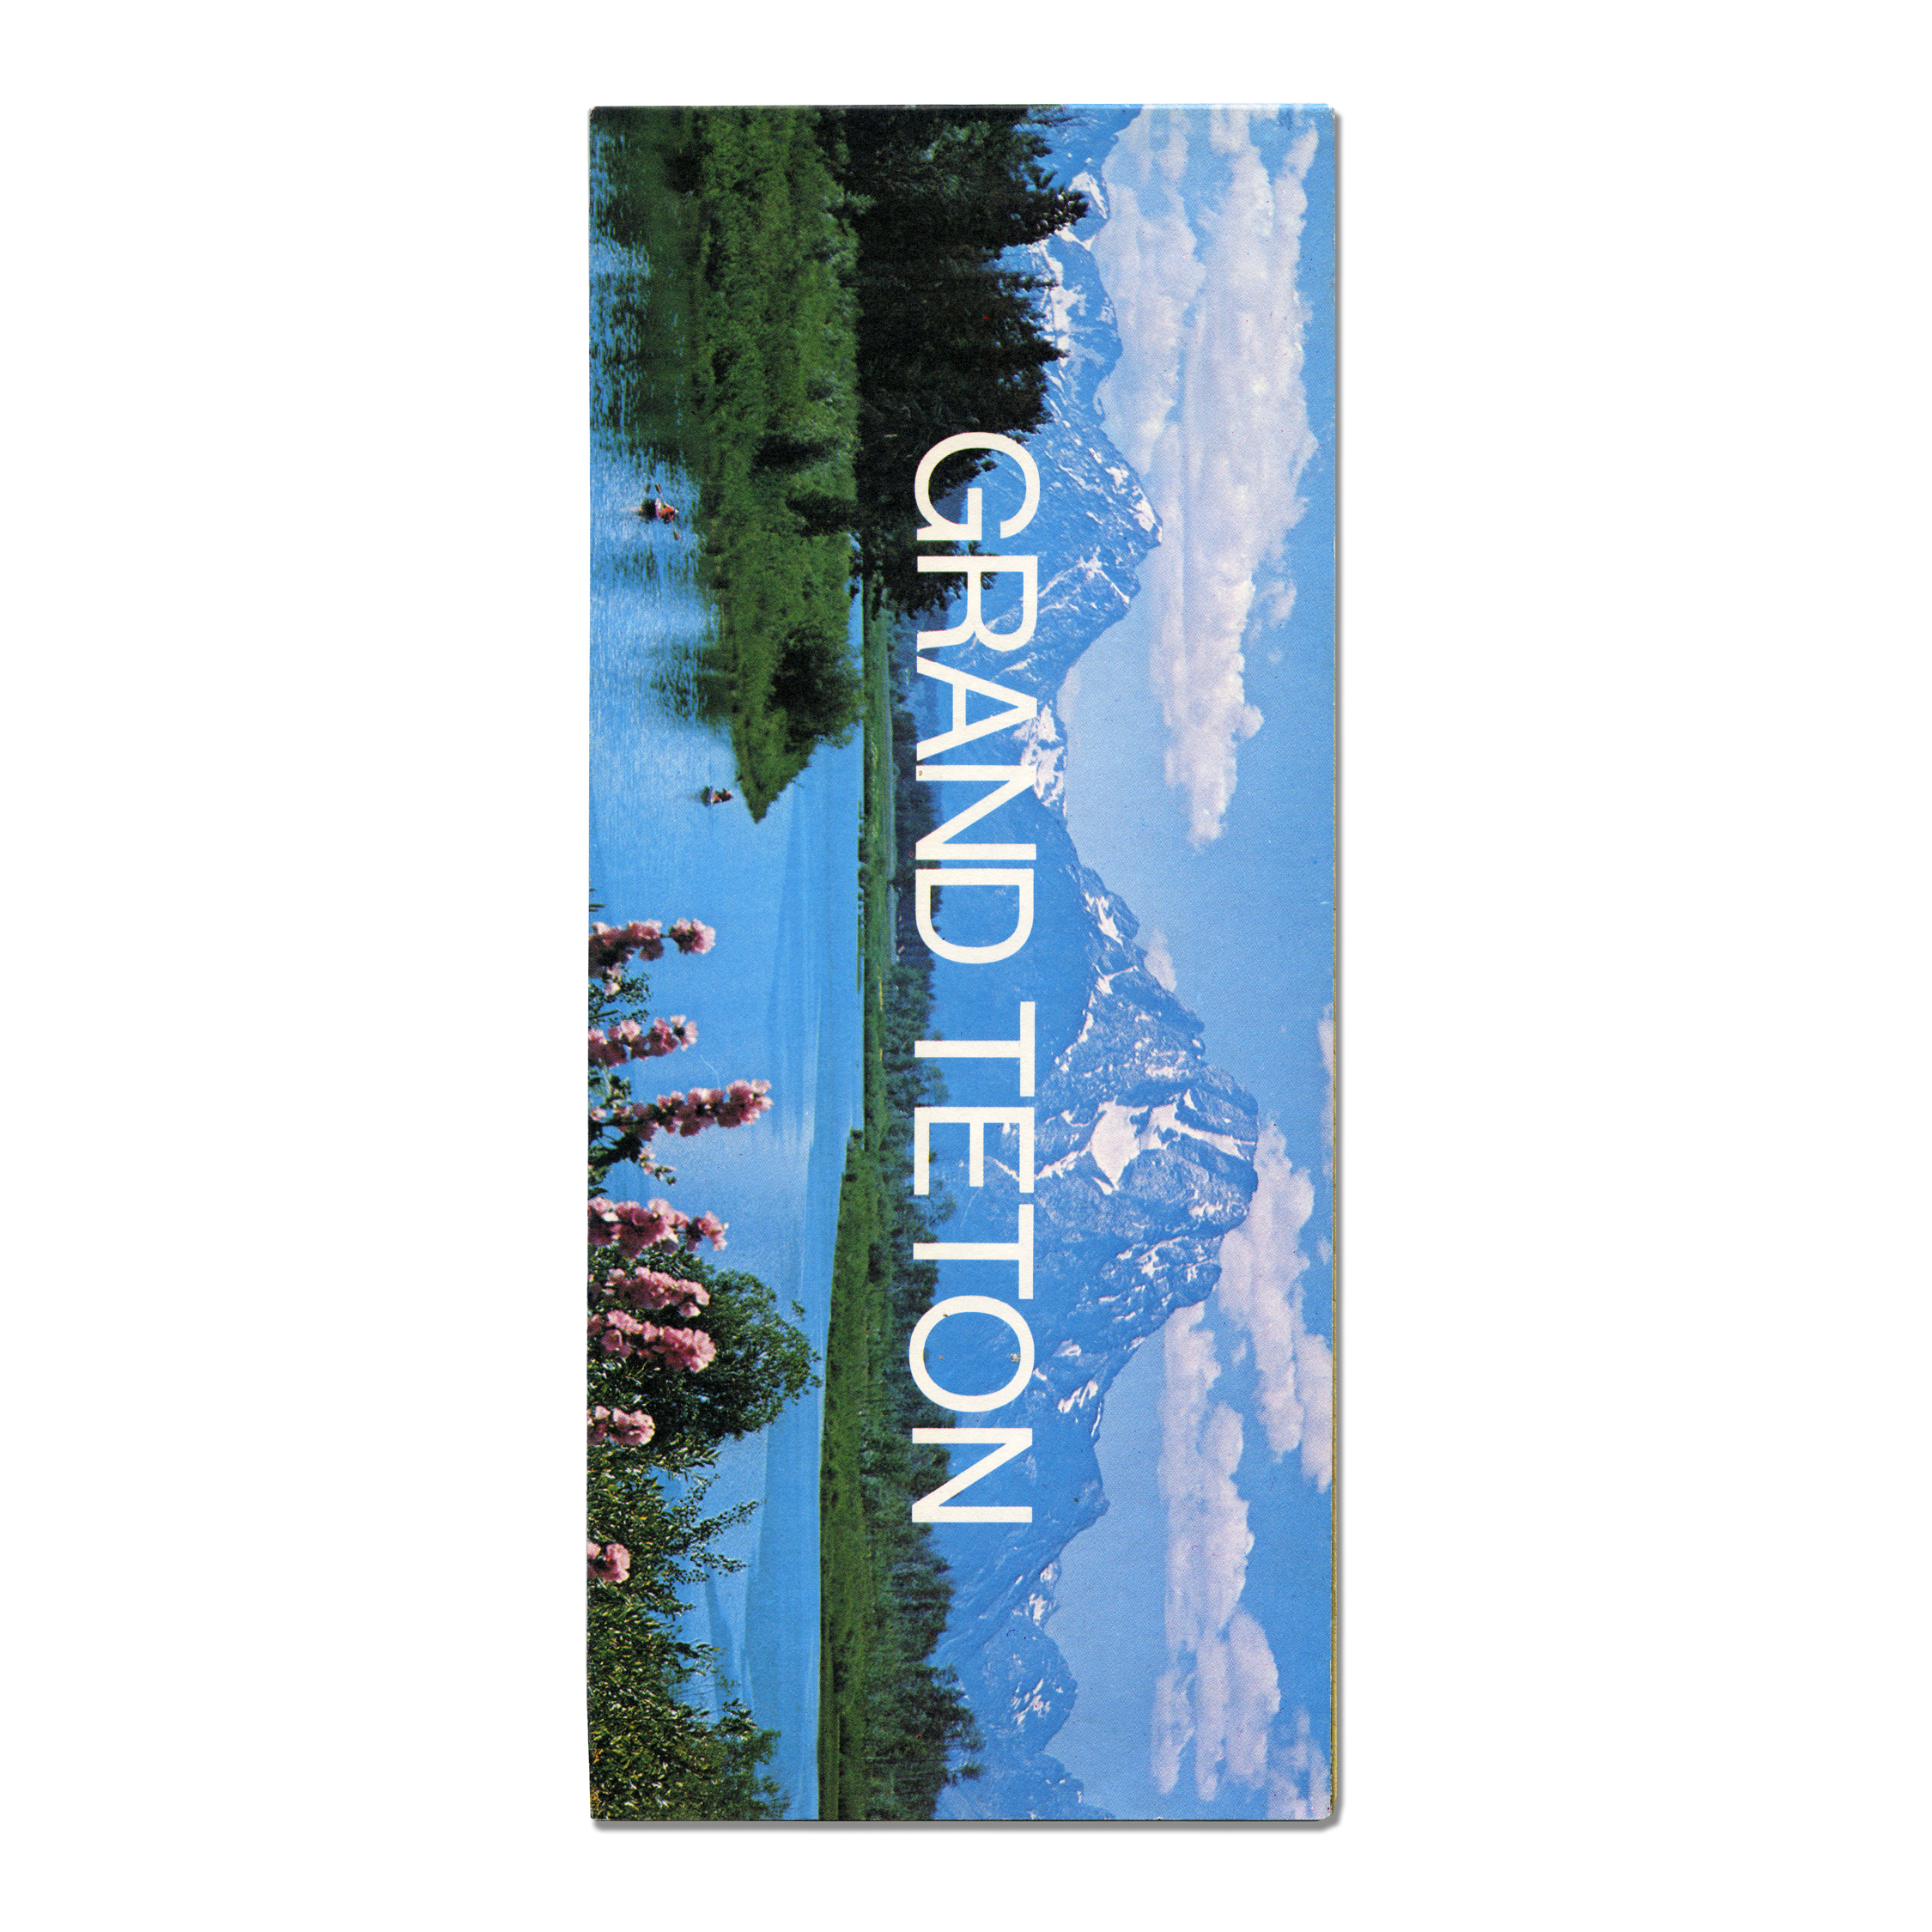 1979_grand_teton_national_park_brochure.jpg